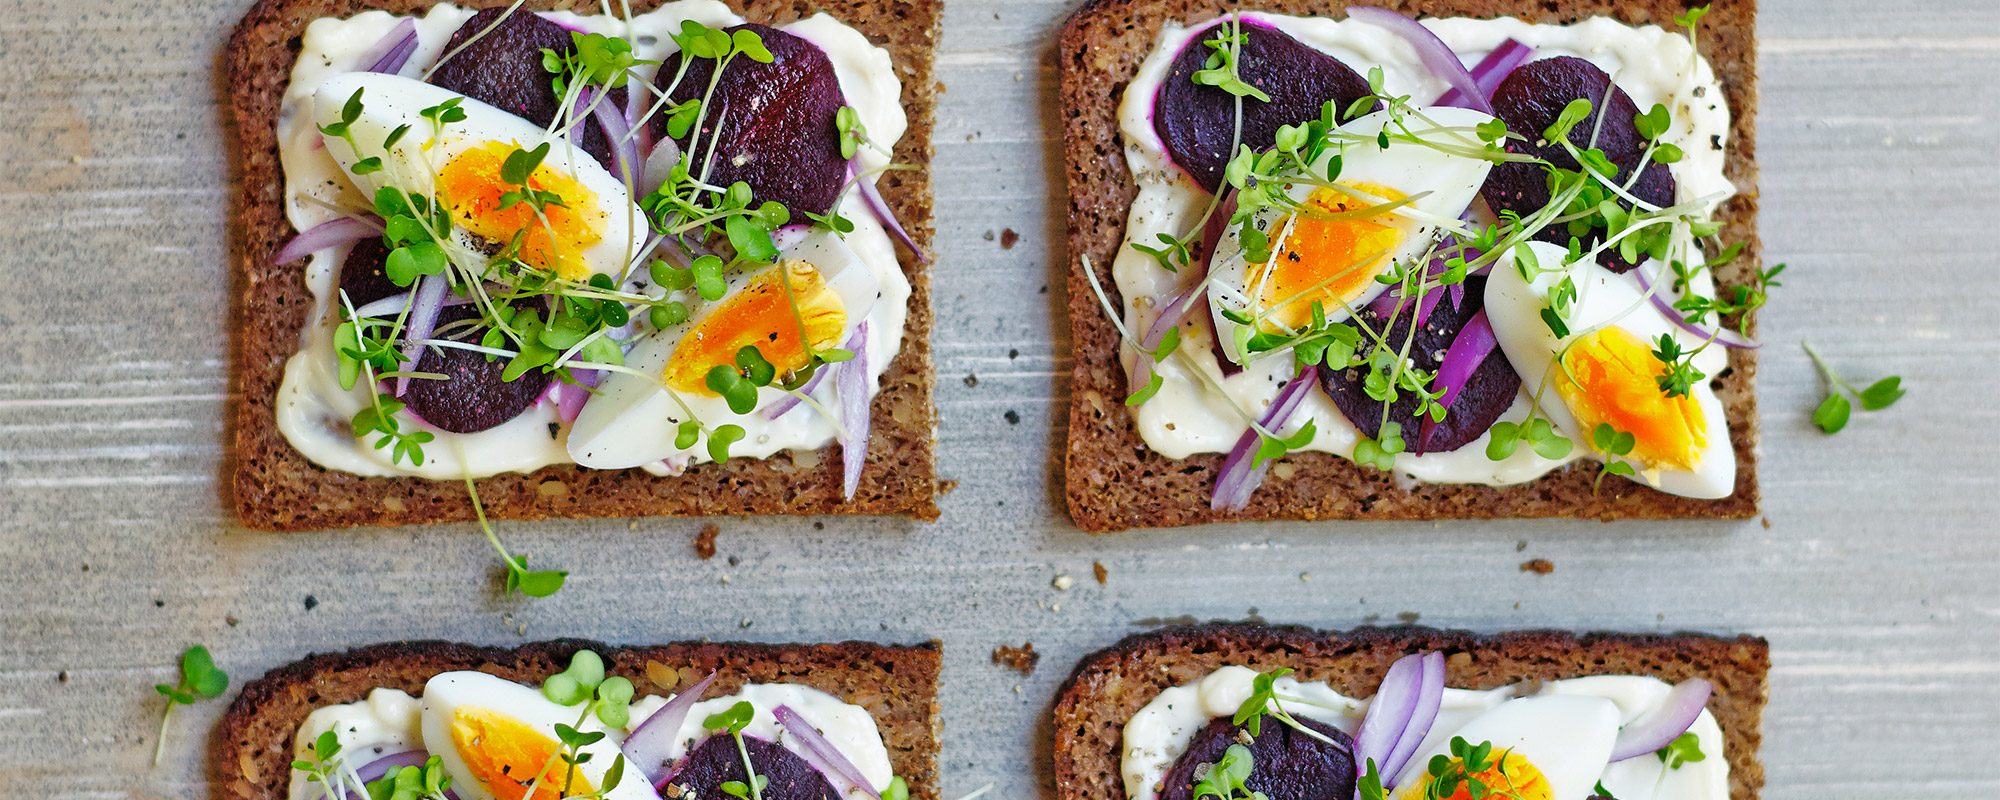 Egg, Beetroot and Salad Cress Sandwich